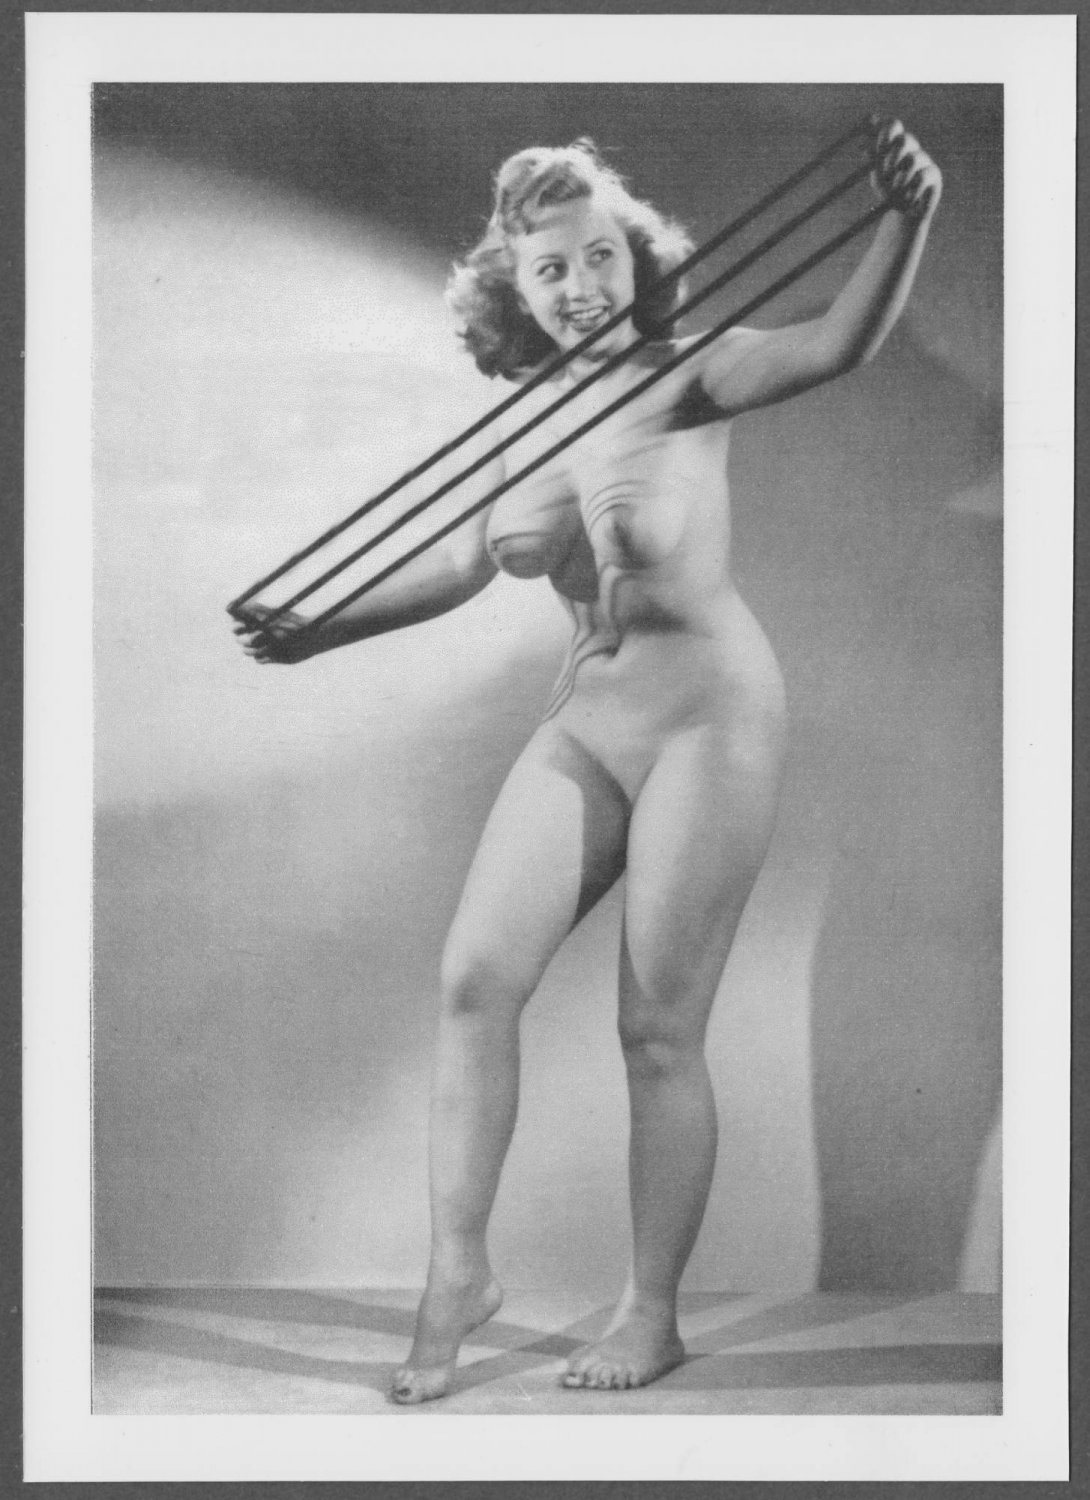 ACTRESS JOAN BLONDELL TOTALLY NUDE NEW REPRINT  5X7    JB-20